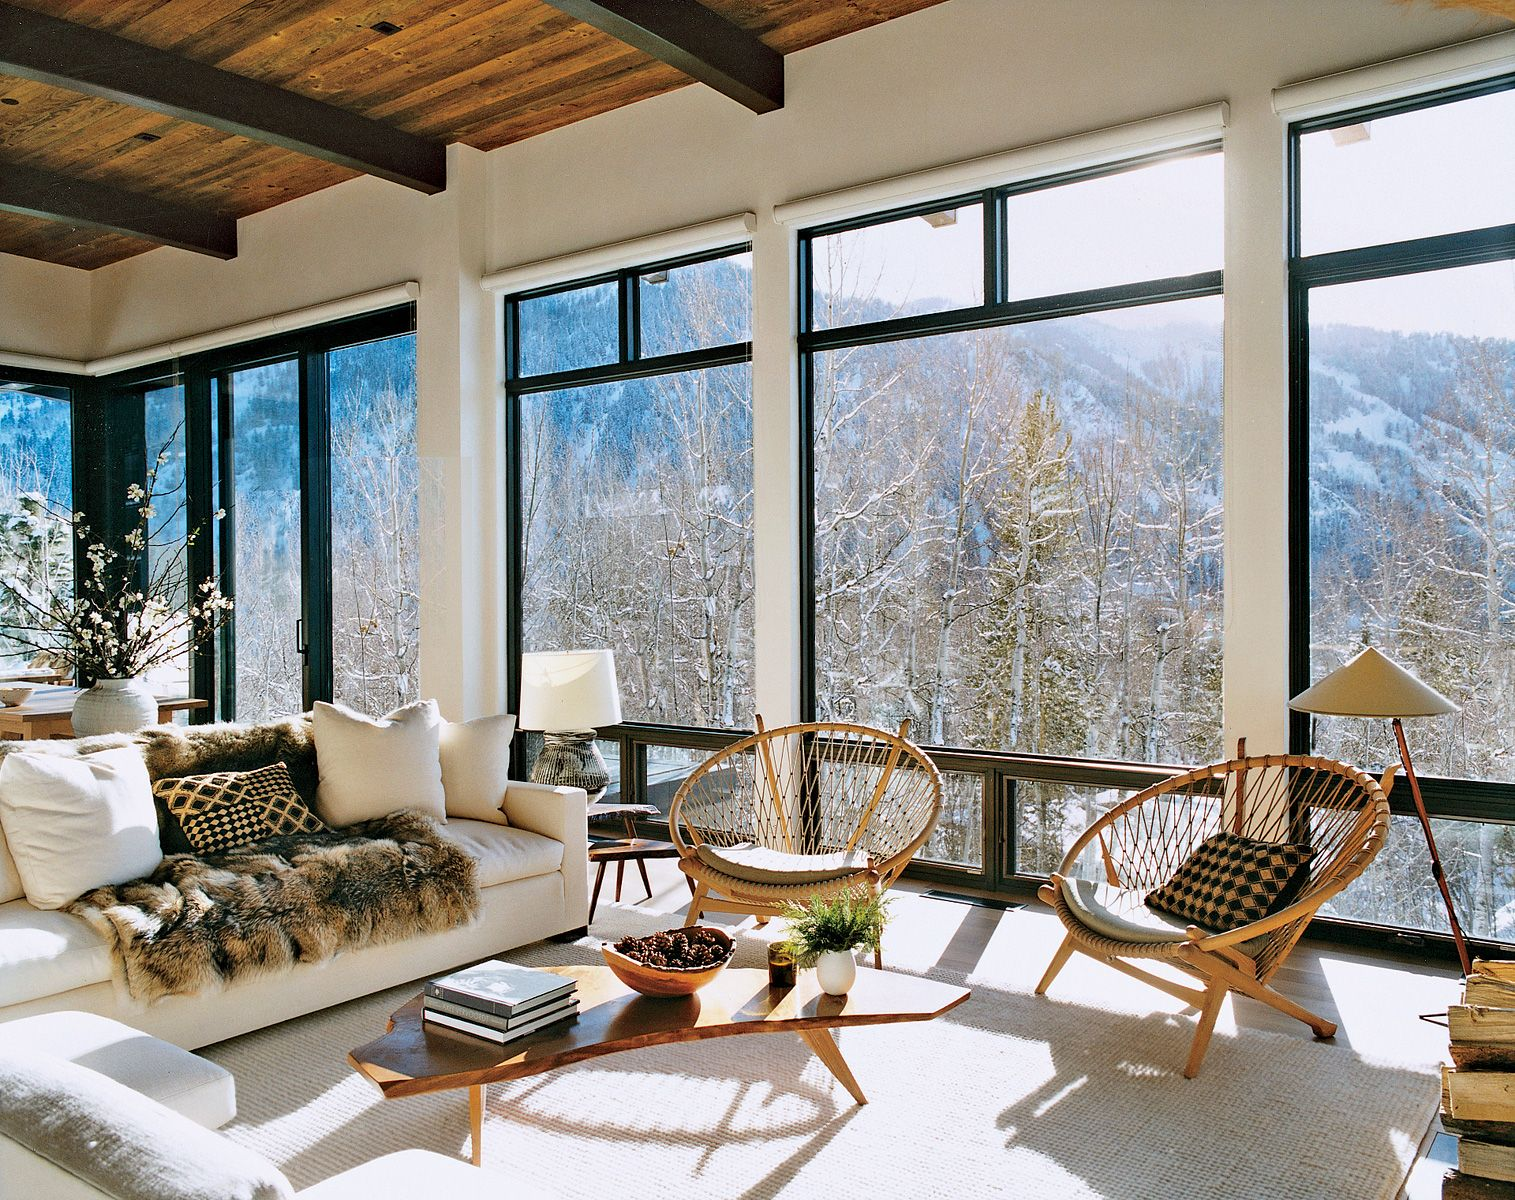 My favorite and my best mfamb home the look for less aerin lauder ski chalet